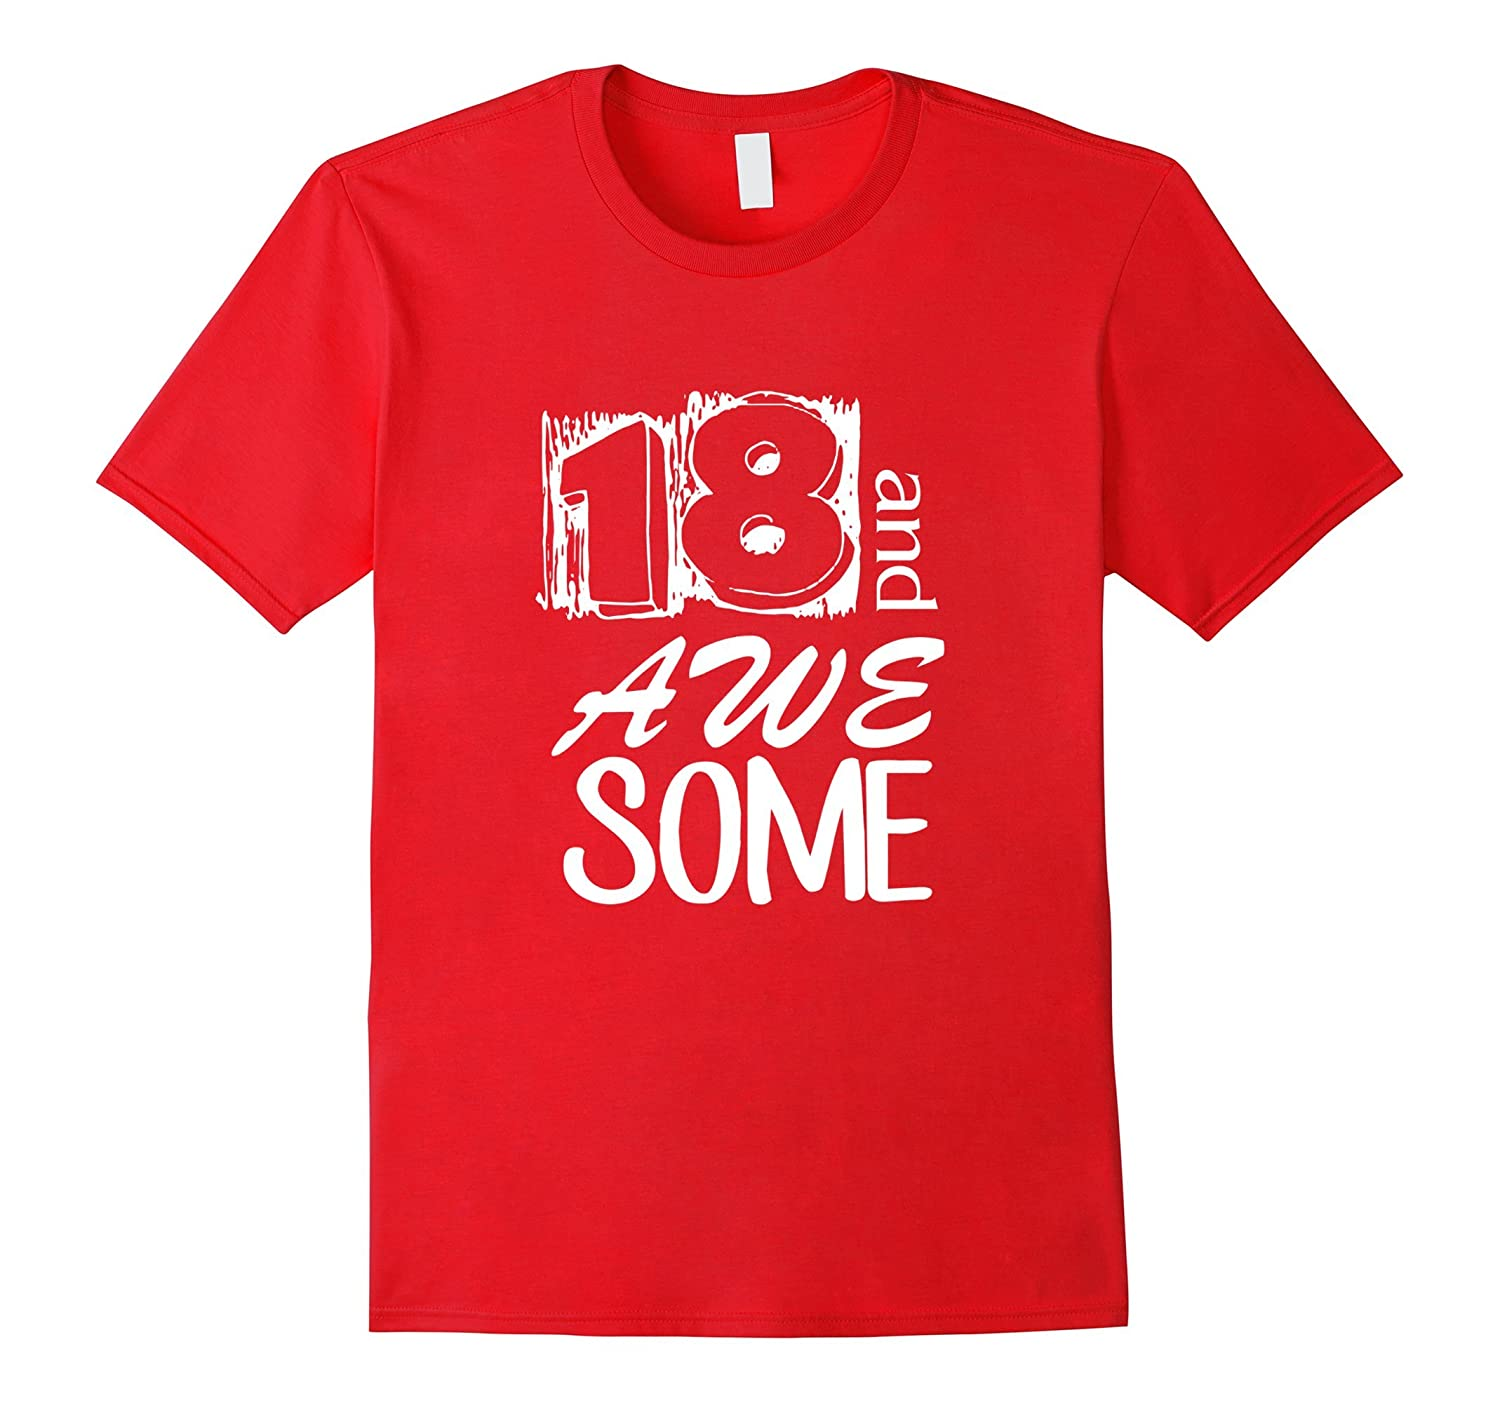 18th Birthday Gift For Boys Girls Men  Women-TH